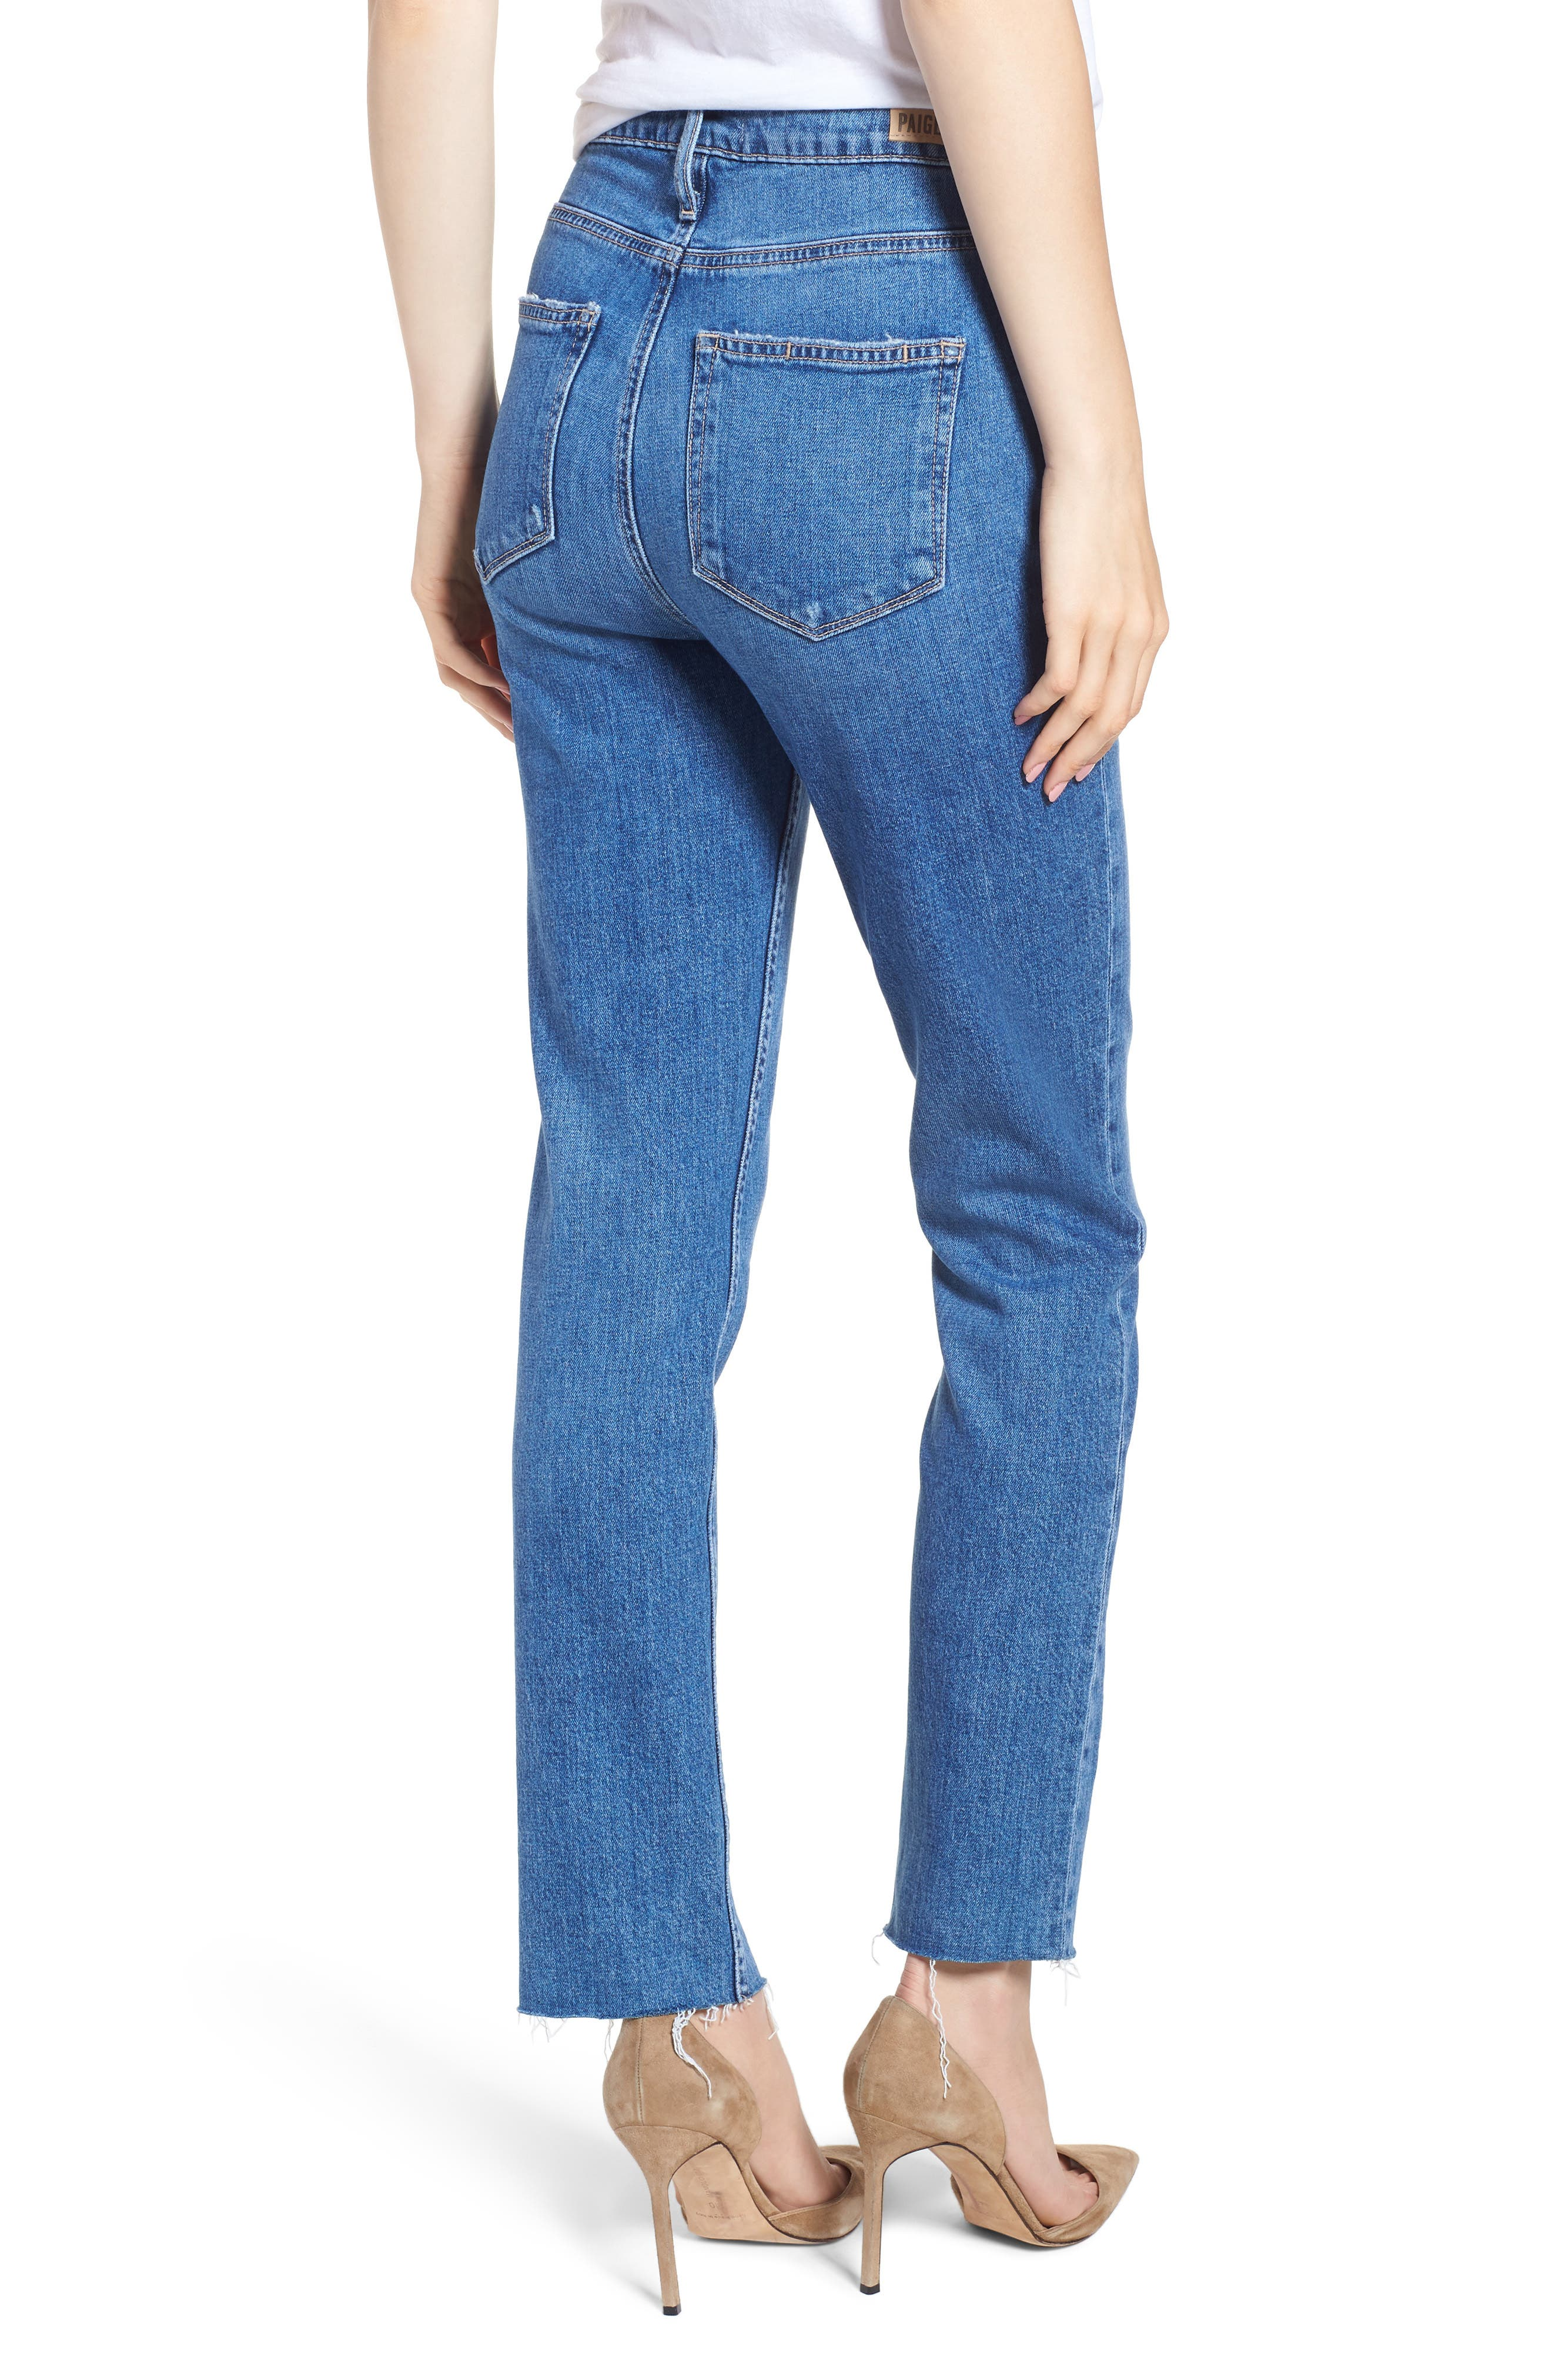 Vintage Hoxton High Waist Slim Raw Hem Jeans,                             Alternate thumbnail 2, color,                             BIRDIE